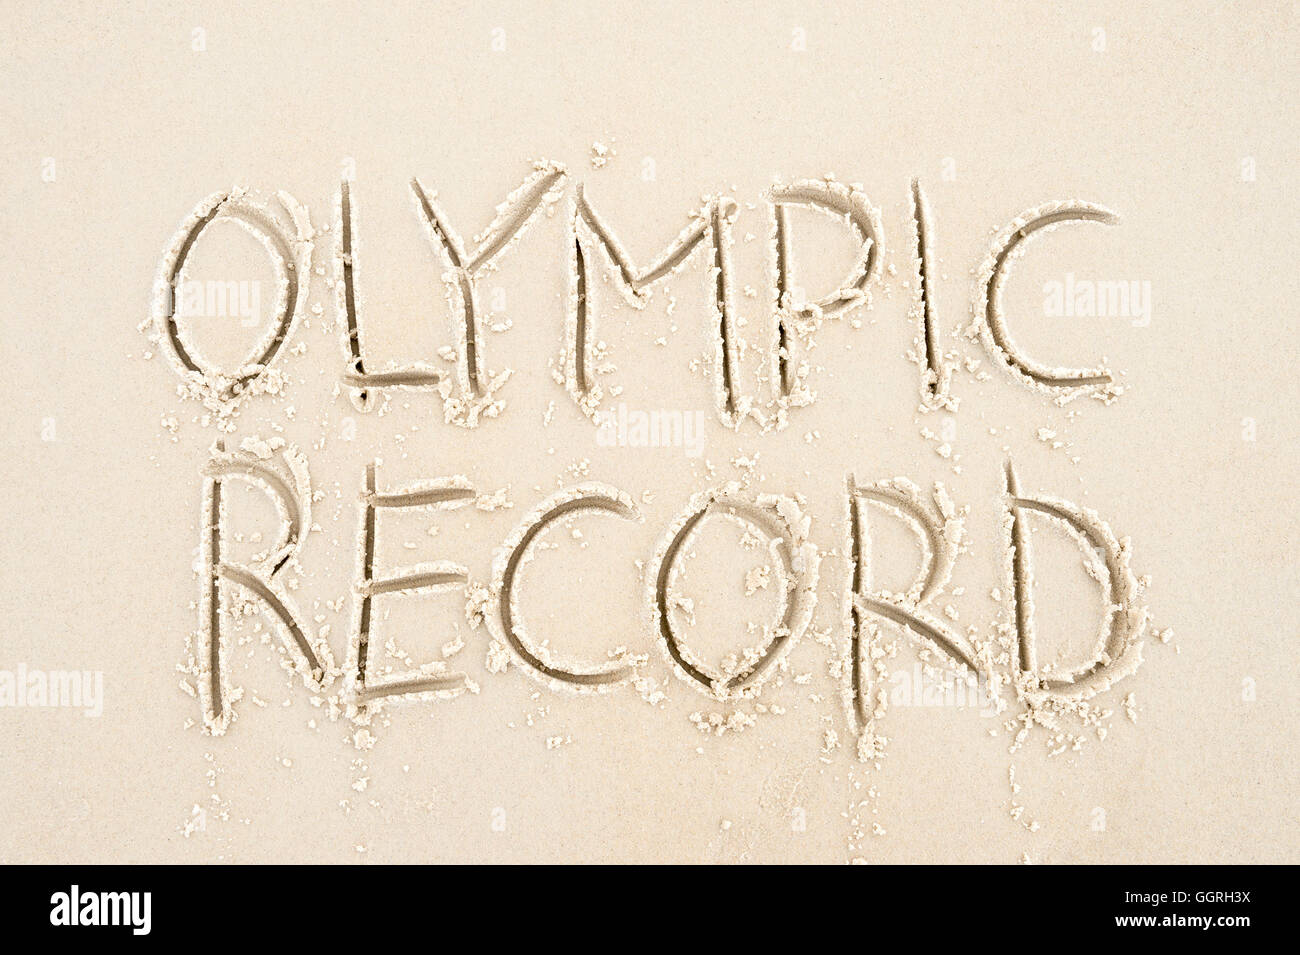 RIO DE JANEIRO - APRIL 4, 2016: Handwritten Olympic Record message handwritten in clean text on smooth sand beach. - Stock Image